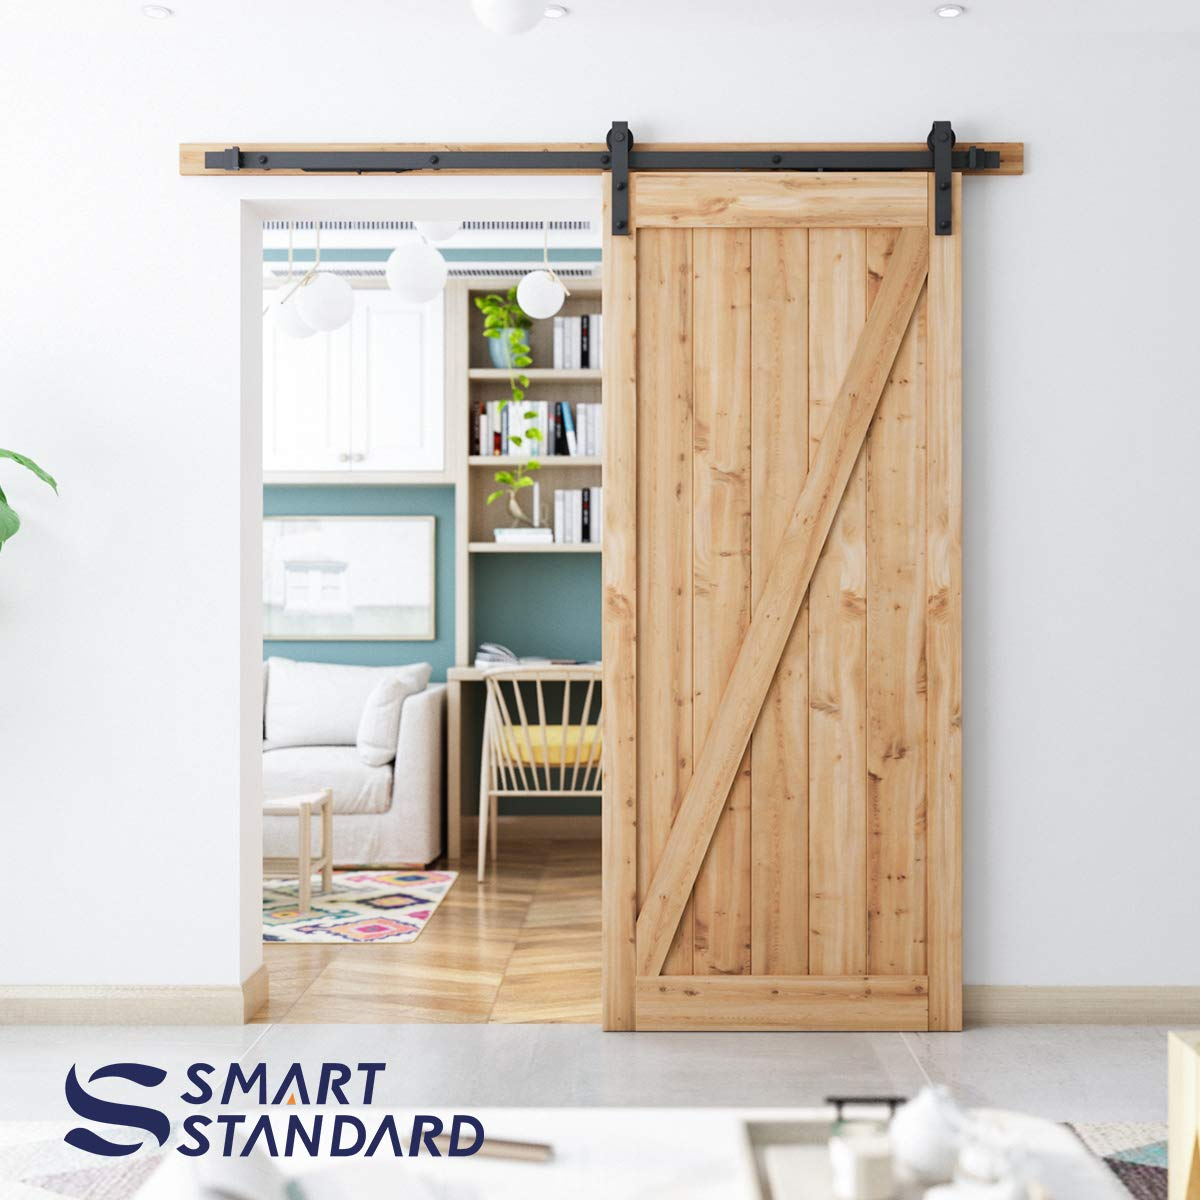 6.6ft Soft Close Heavy Duty Sturdy Sliding Barn Door Hardware Kit - Smoothly and Quietly - Simple and Easy to Install - Includes Step-By-Step Installation Instruction -Fit 36''-40'' Door Panel(J Shape) by SMARTSTANDARD (Image #4)